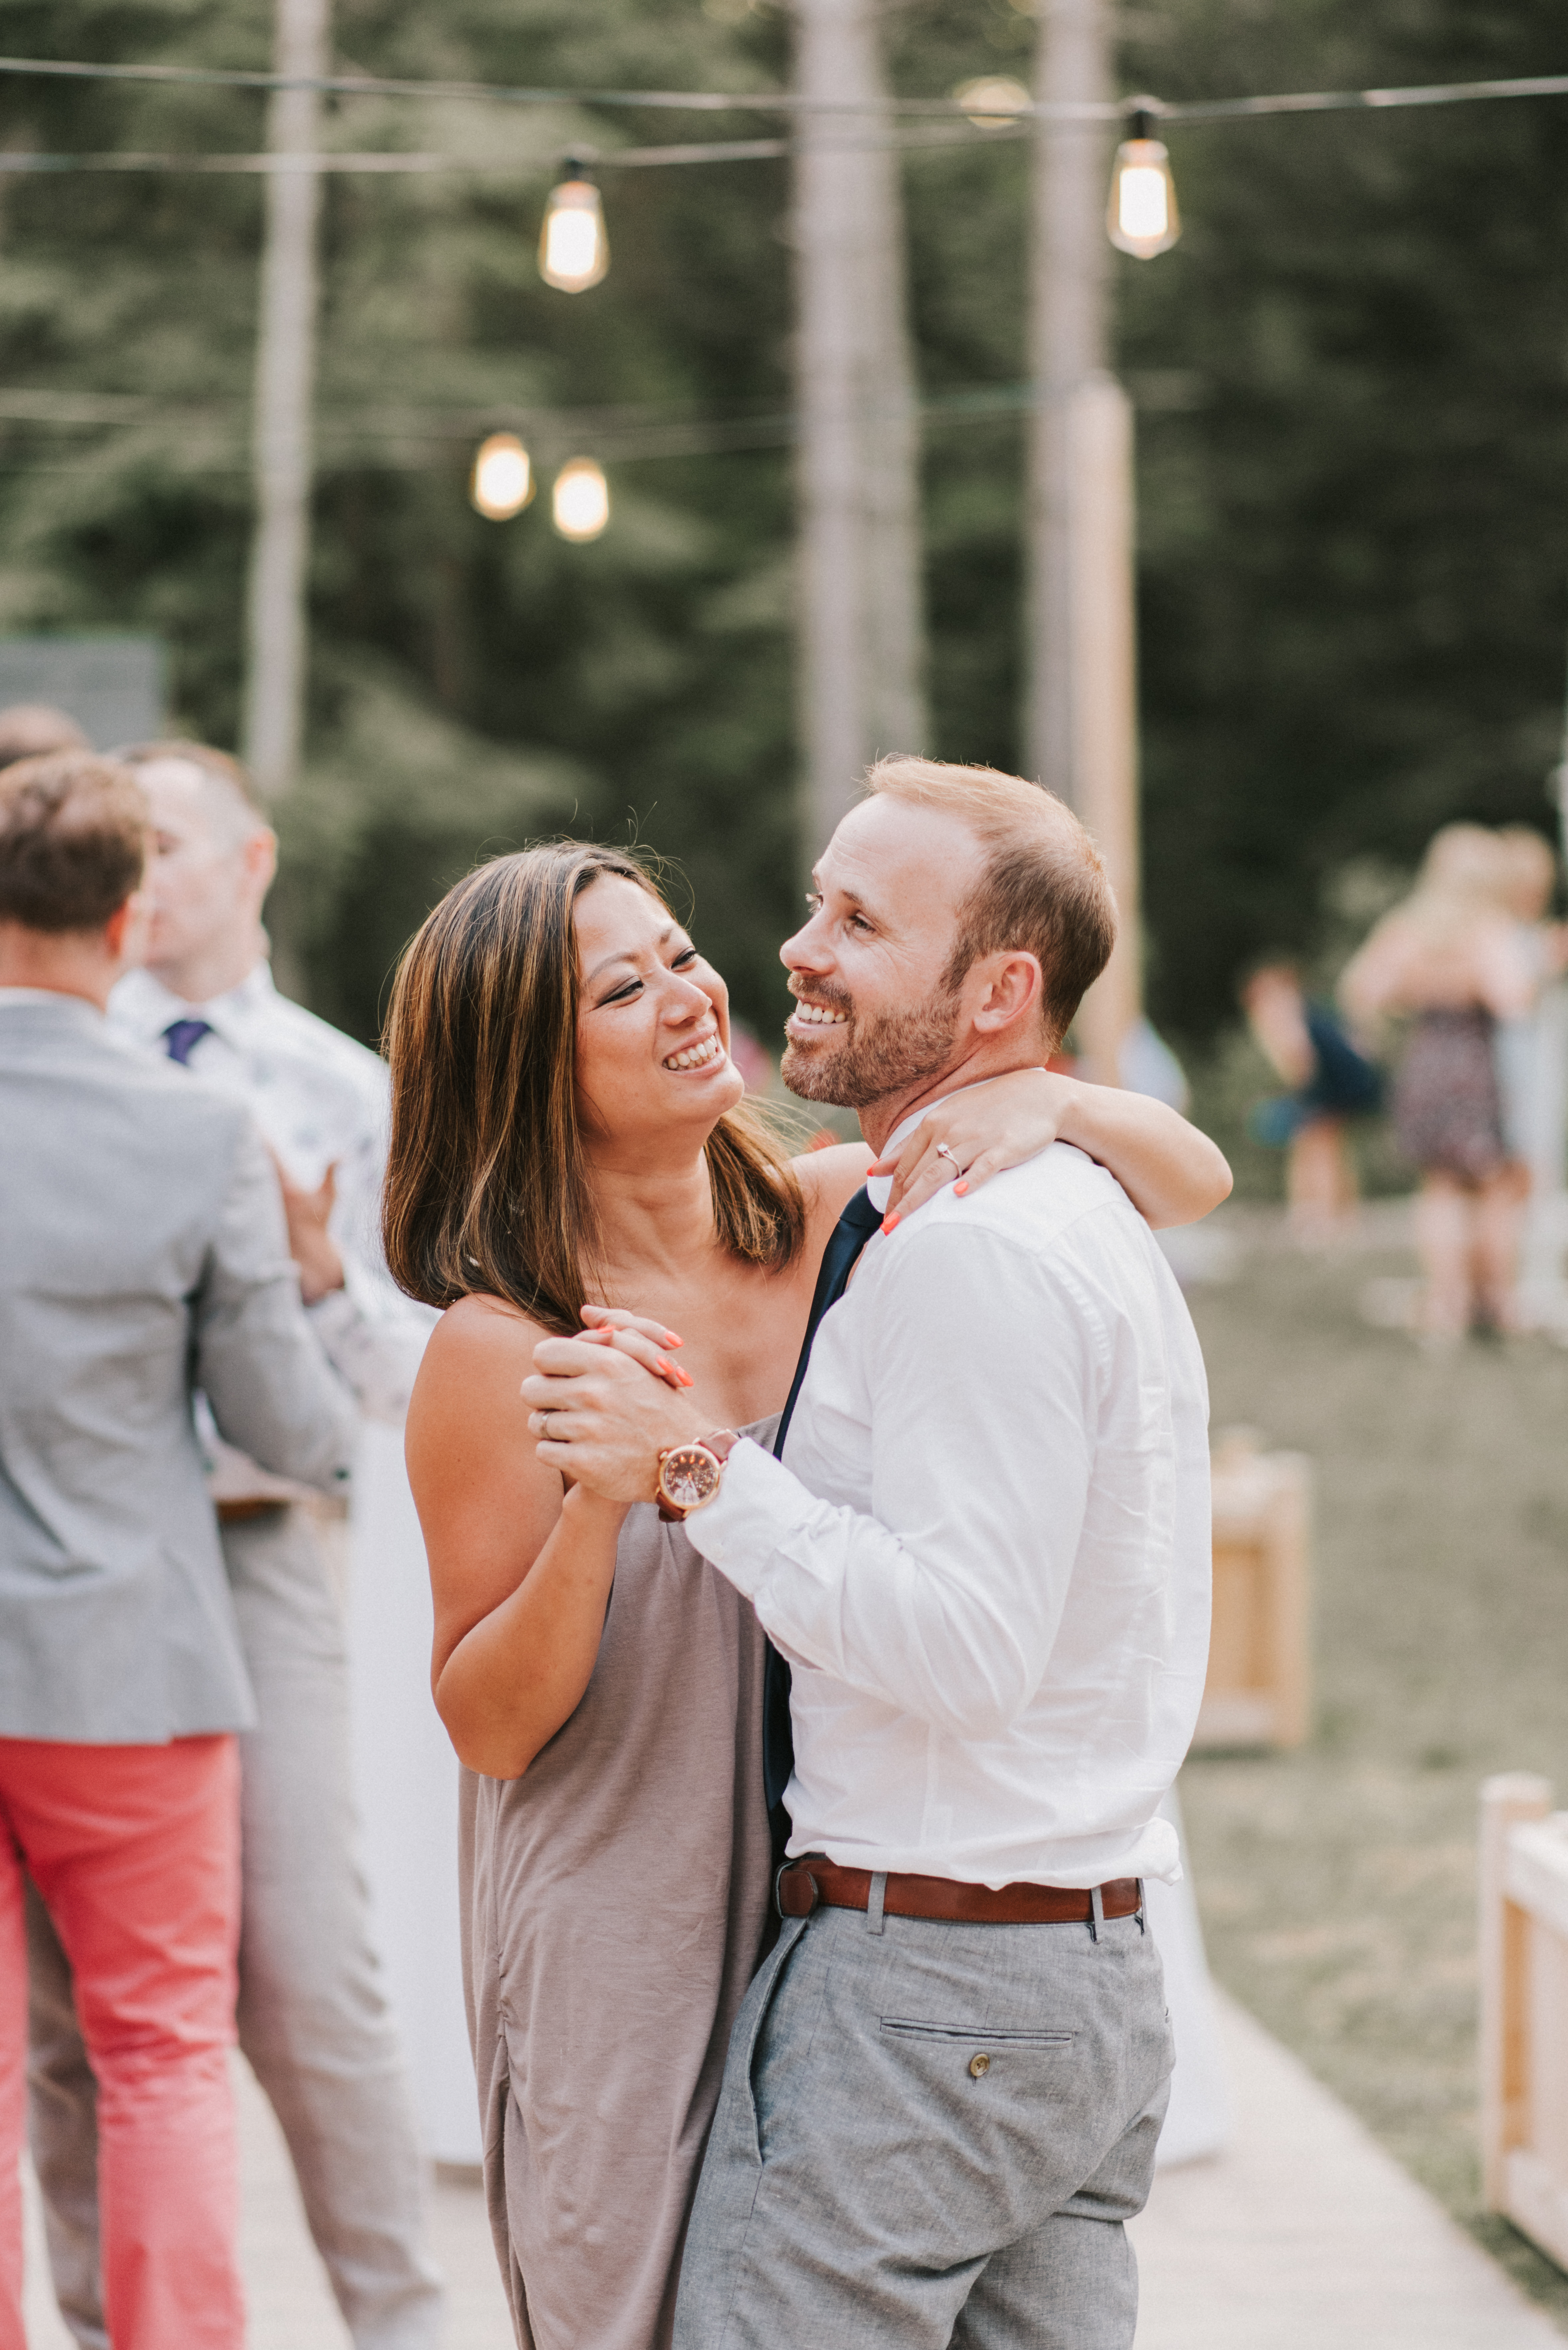 Guests dancing at Hidden Pond Wedding in Kennebunkport, Maine